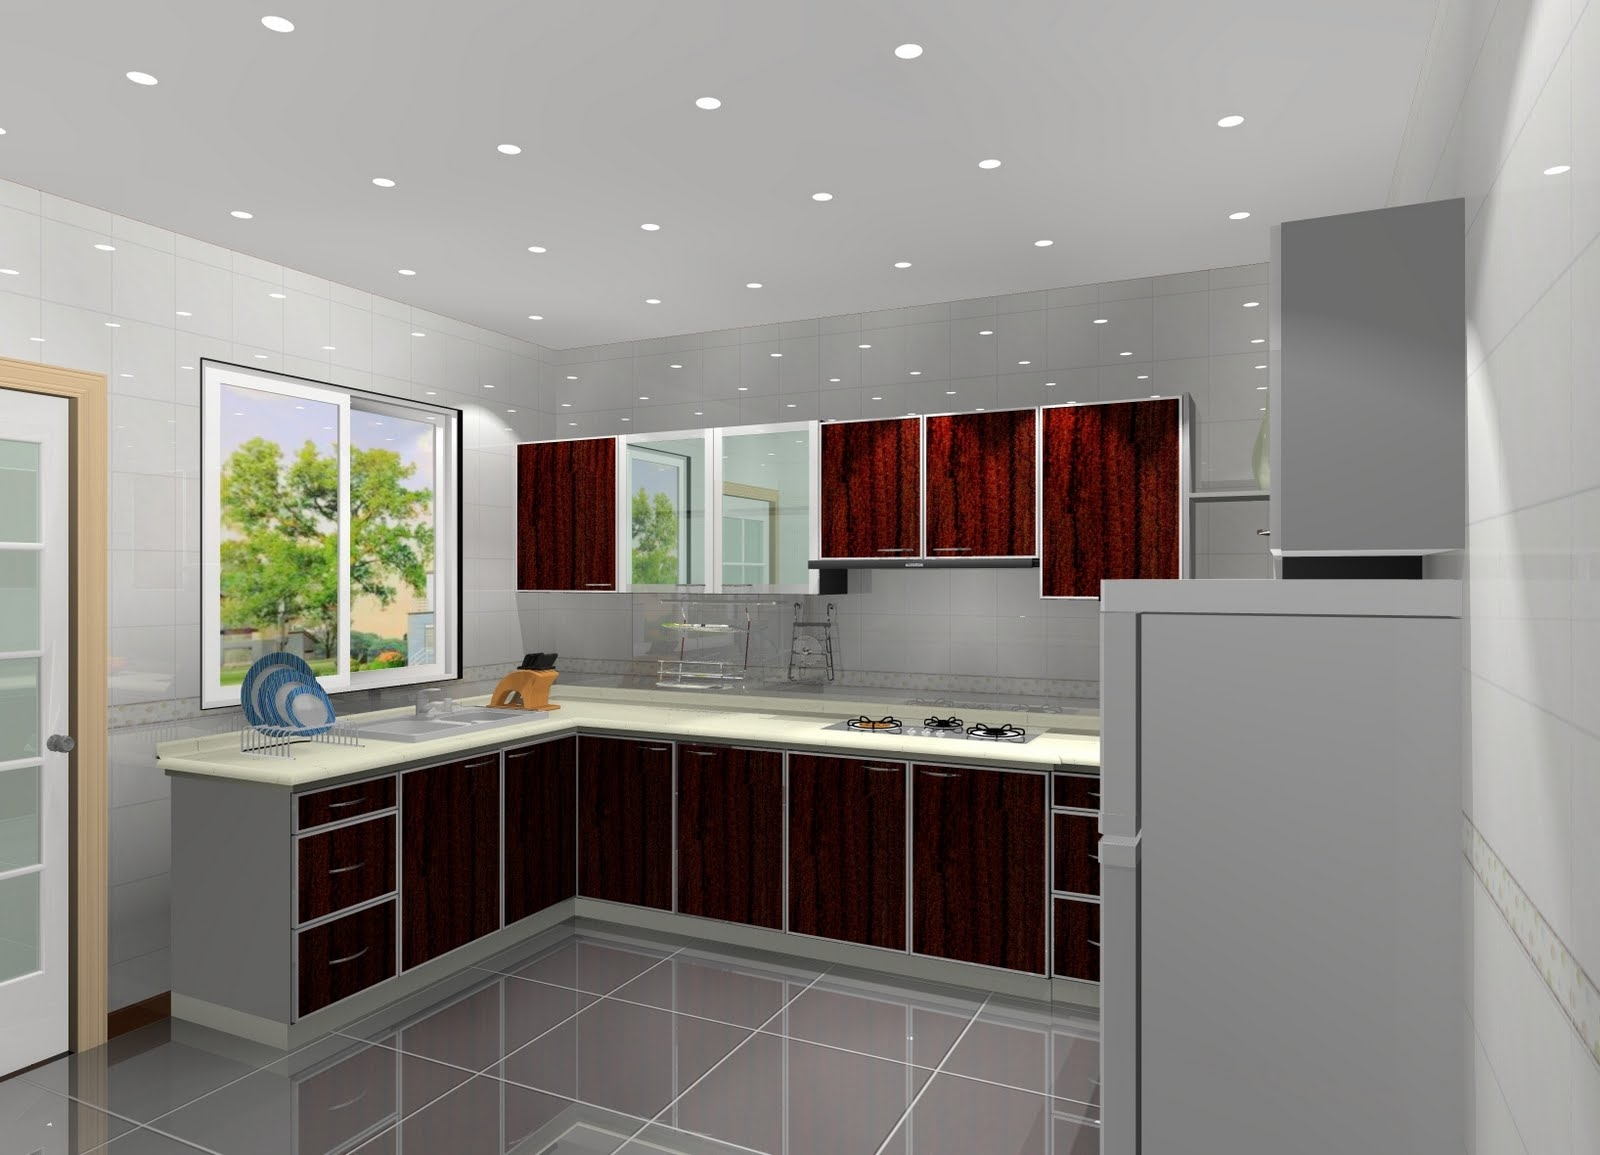 Different Designs Of Kitchen Cabinets